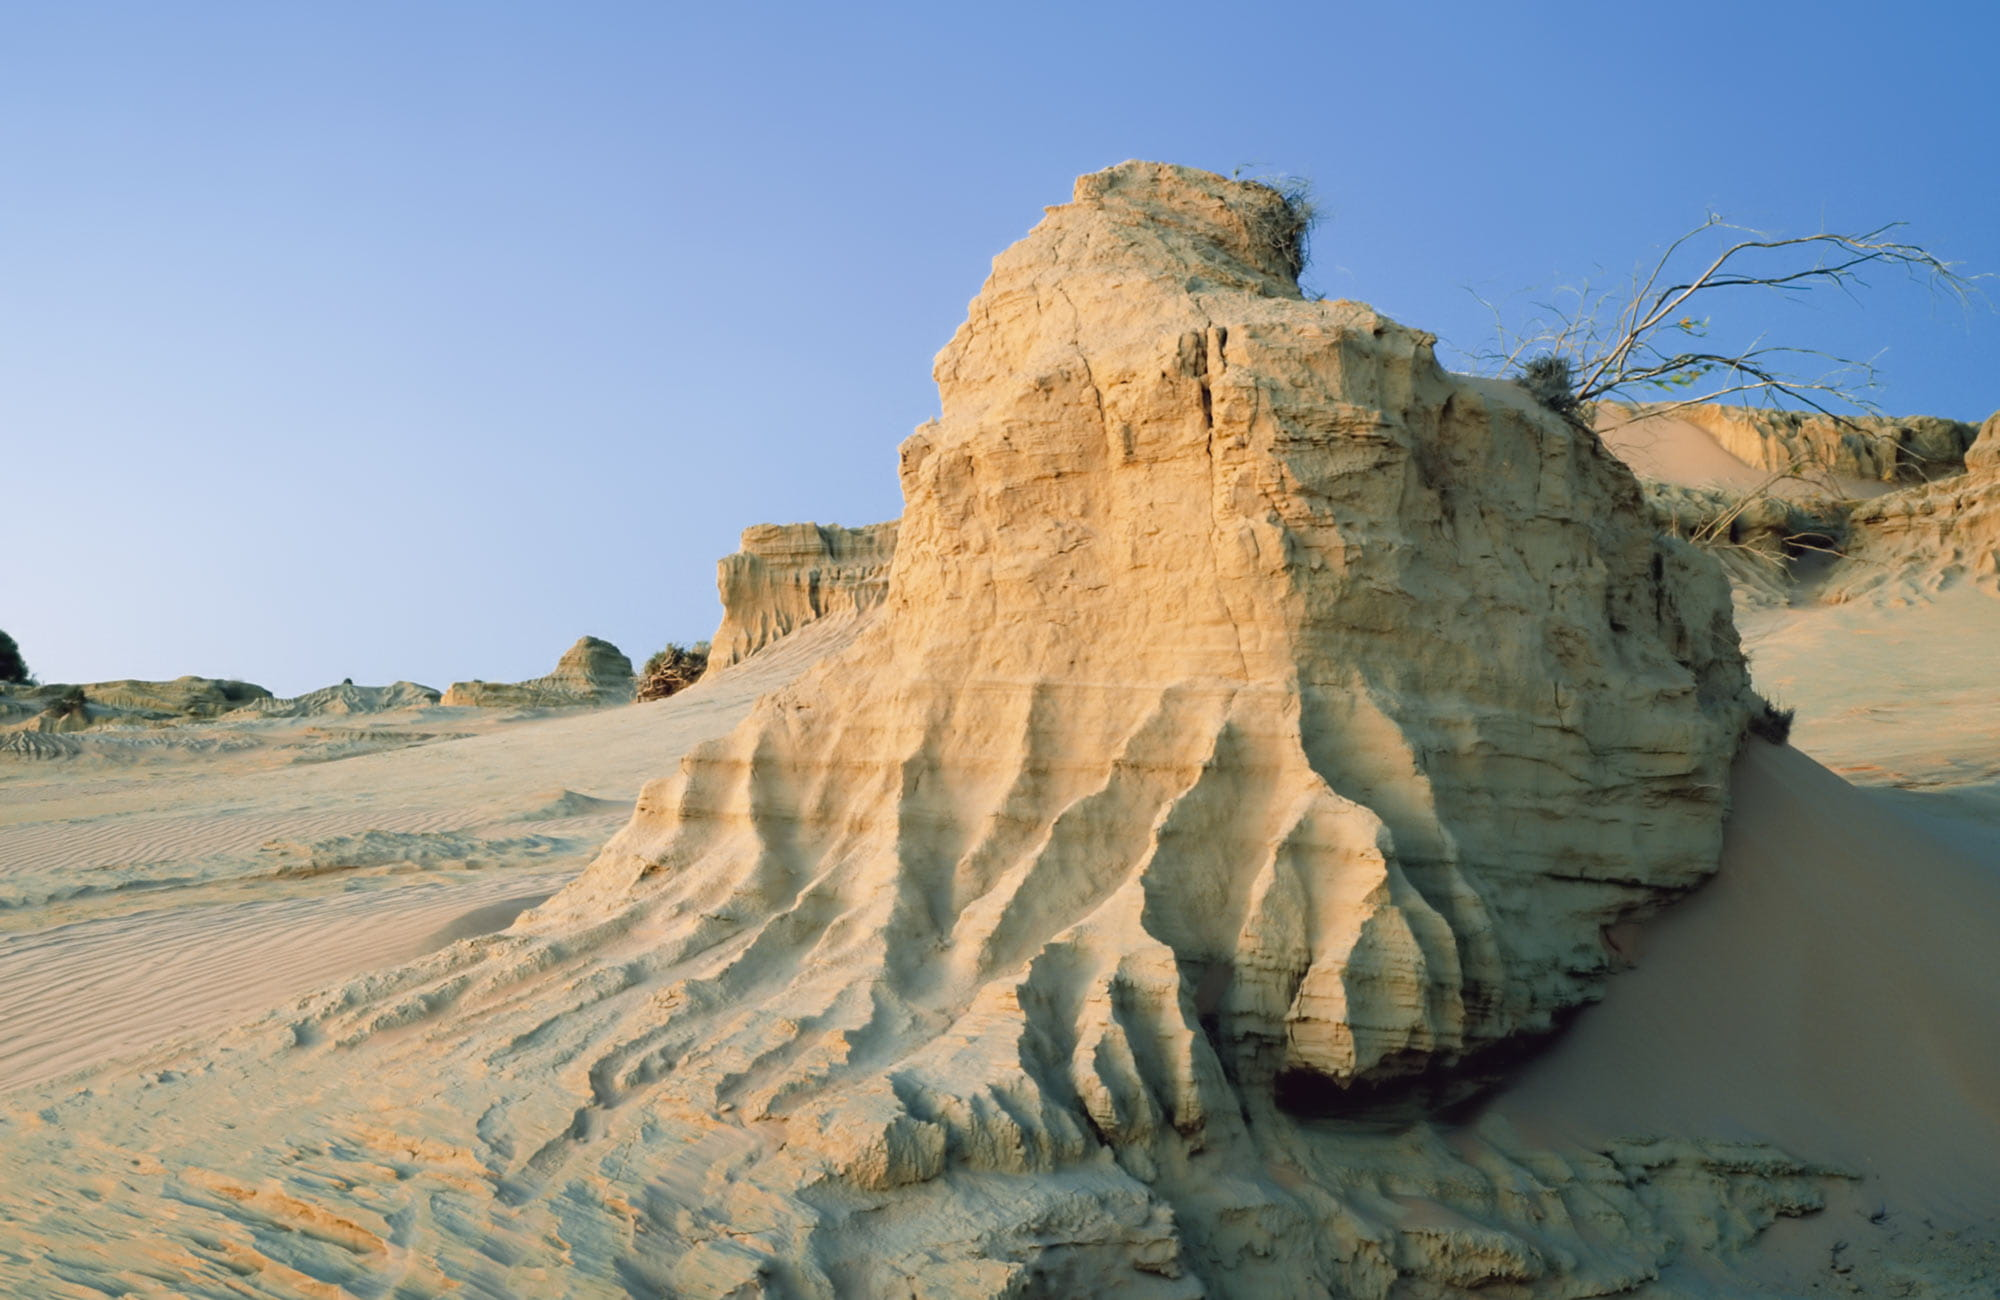 Sand formation, Walls of China, Mungo National Park. Photo:OEH